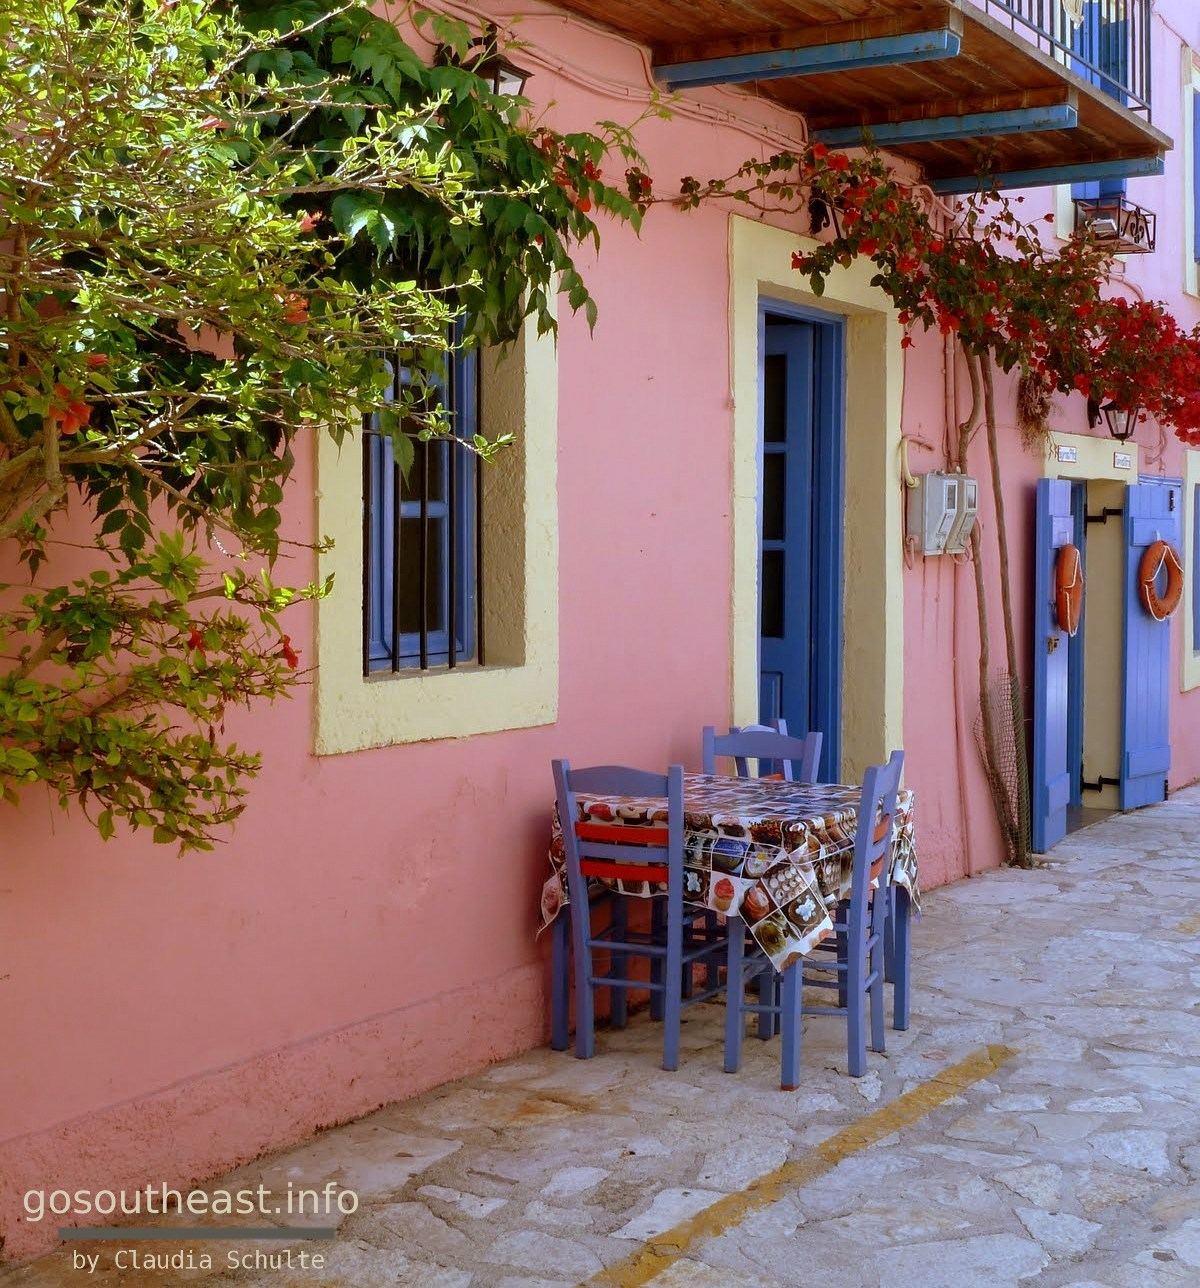 The most photographed house in Fiskardo on the Ionian Island of Kefalonia.